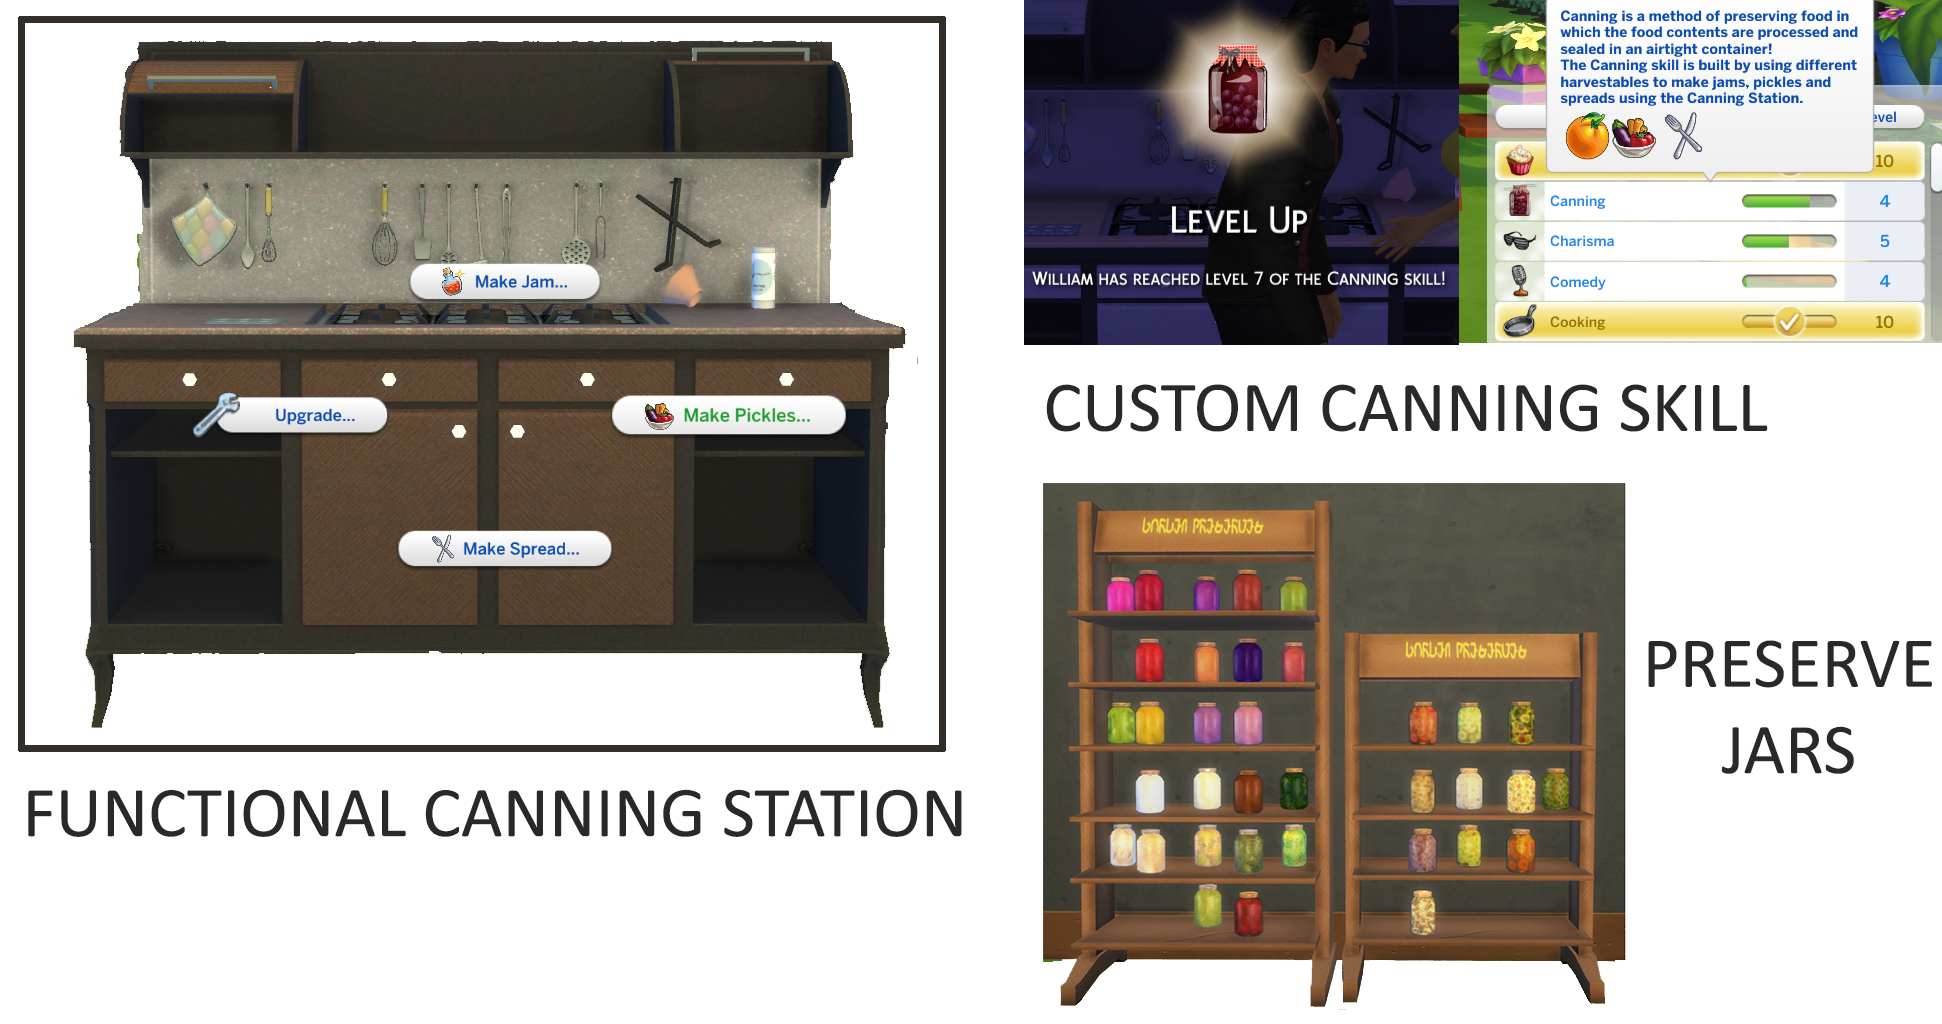 Functional Canning Station and Custom Canning Skill by icemunmun